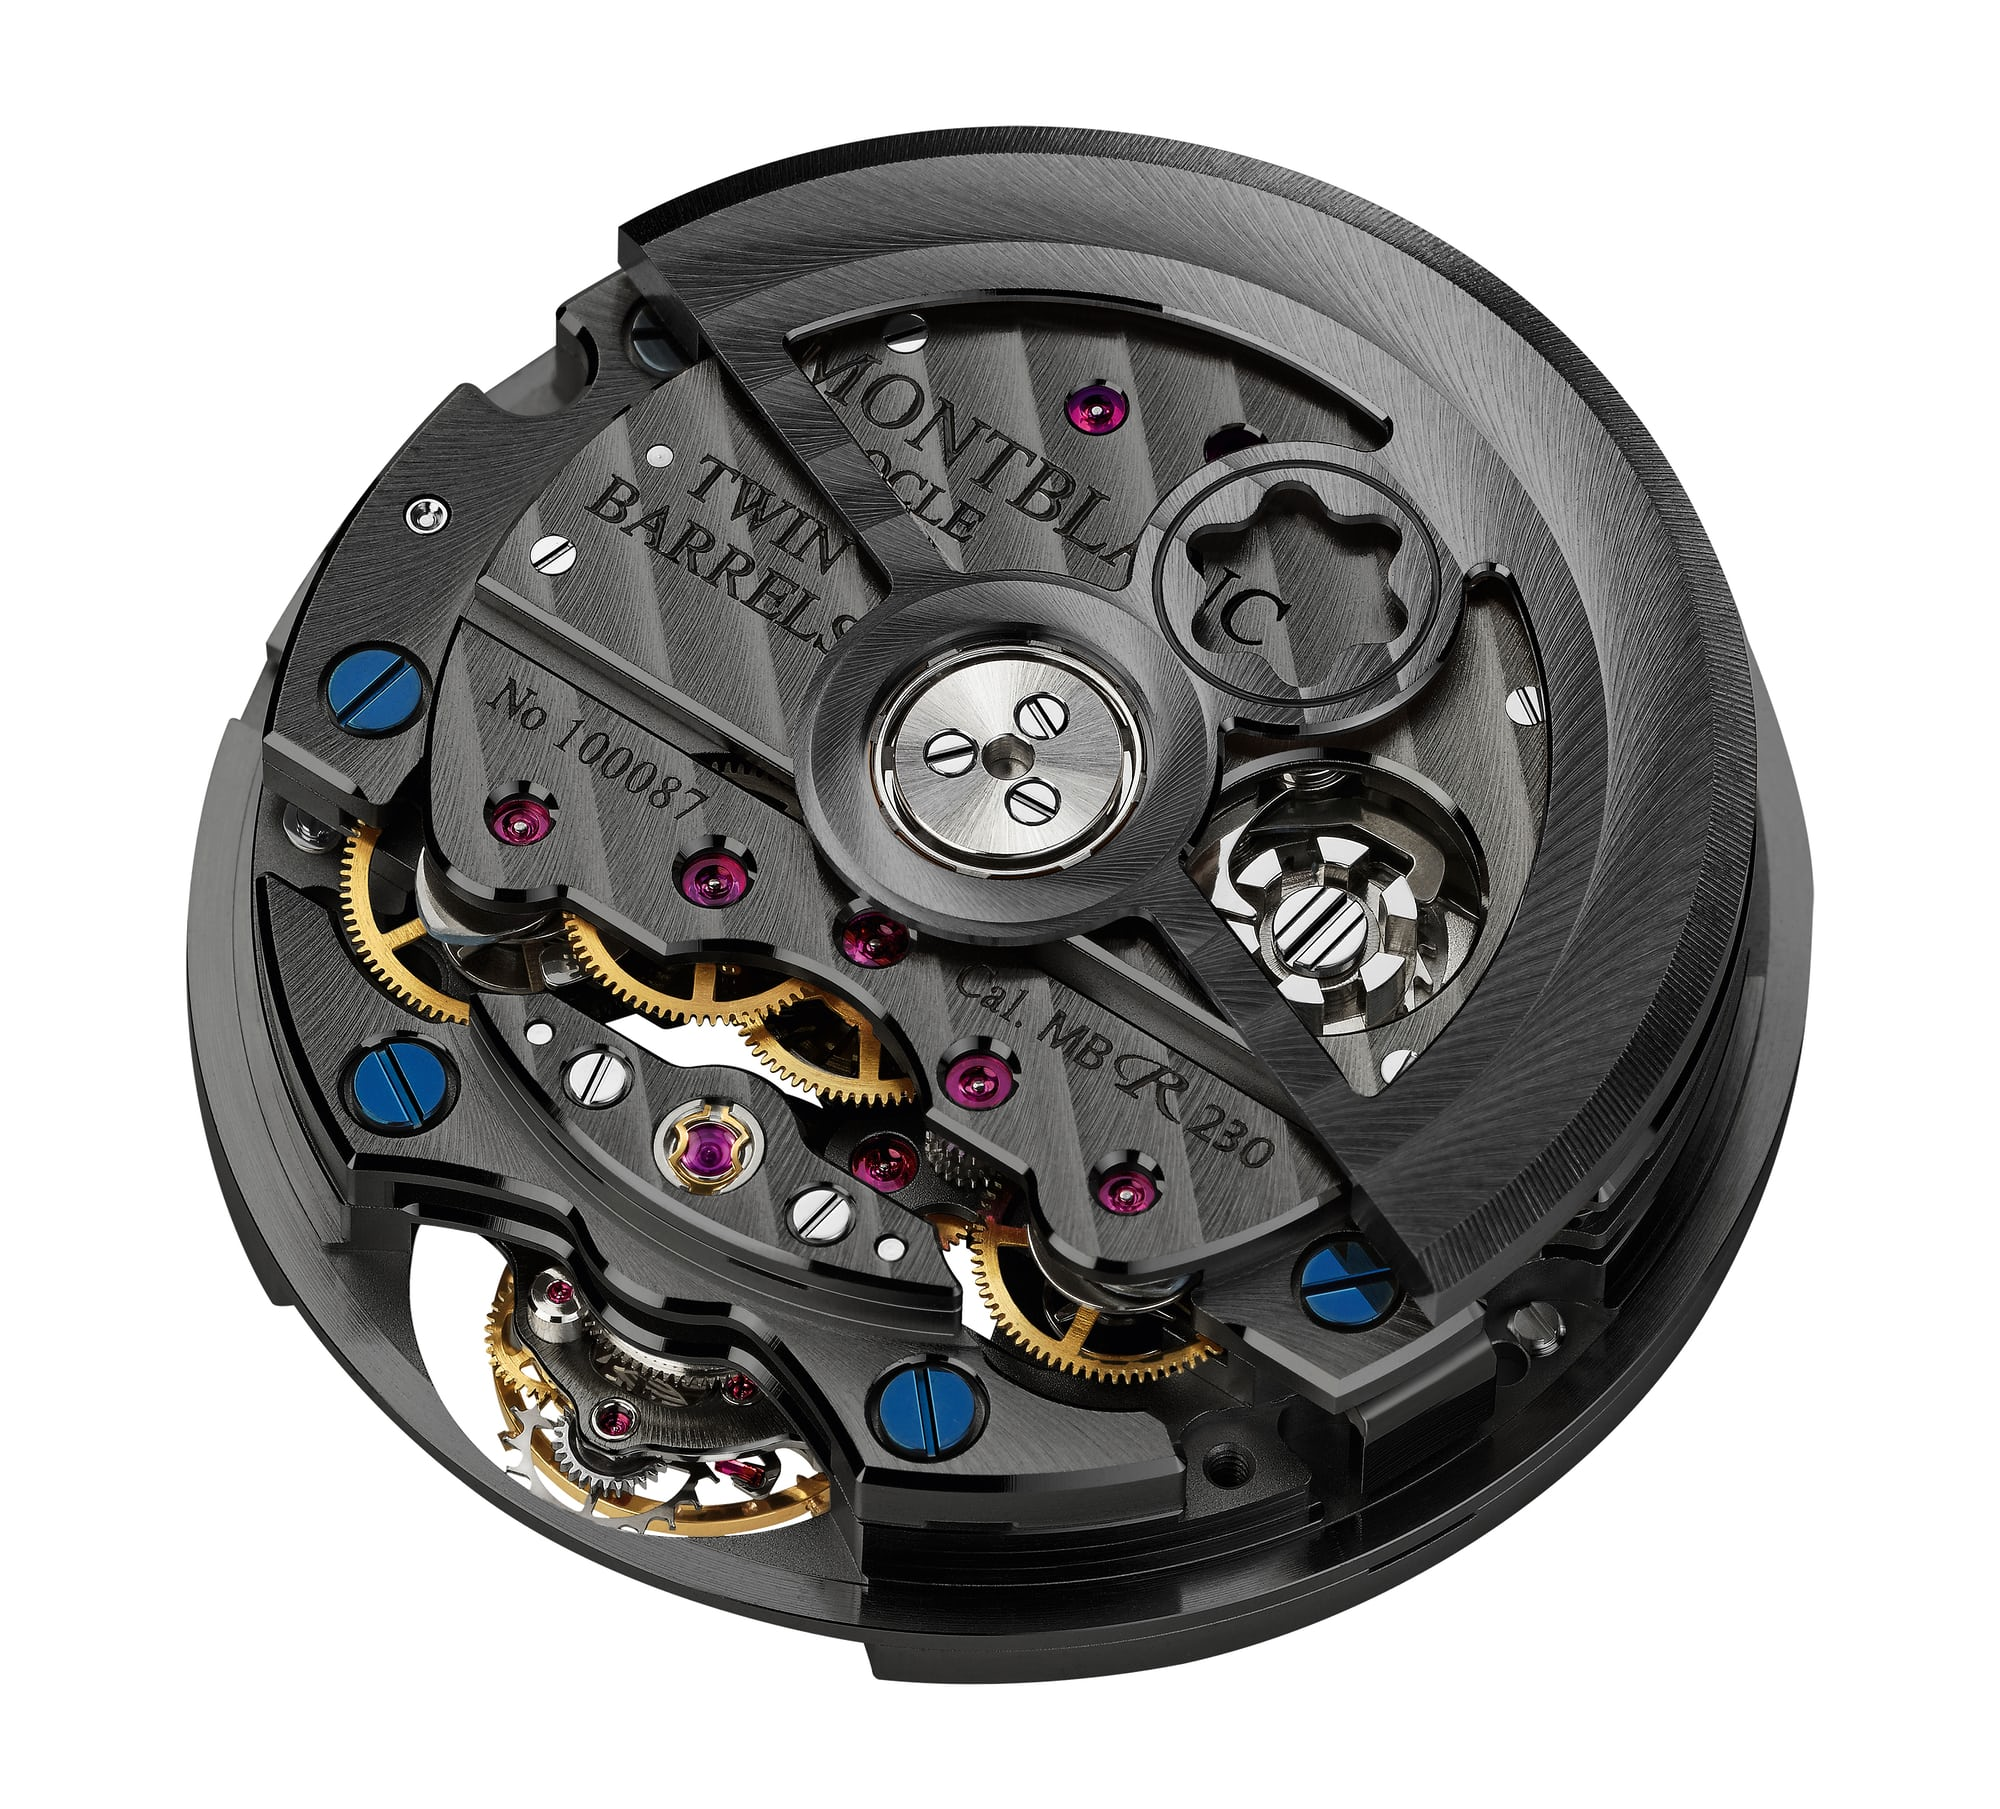 Montblanc caliber MB R230. dispatches: with montblanc at the petrolhead's paradise that is the goodwood festival of speed Dispatches: With Montblanc At The Petrolhead's Paradise That Is The Goodwood Festival Of Speed MON 301160